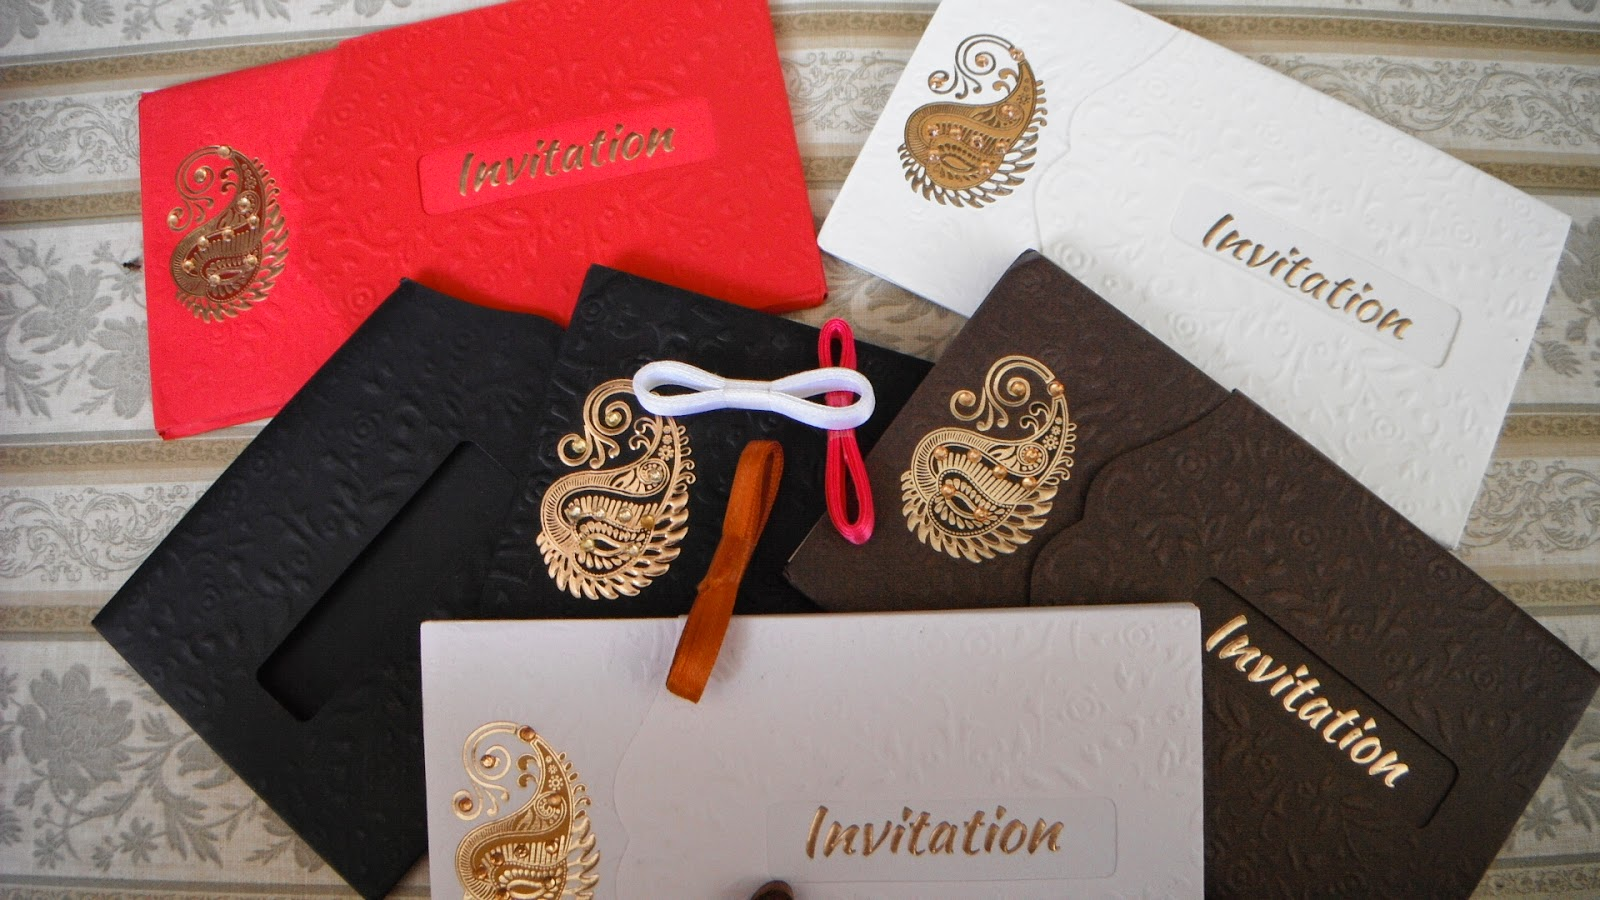 Pakistani Wedding Cards Online Shop Supplier in USA UK Europe